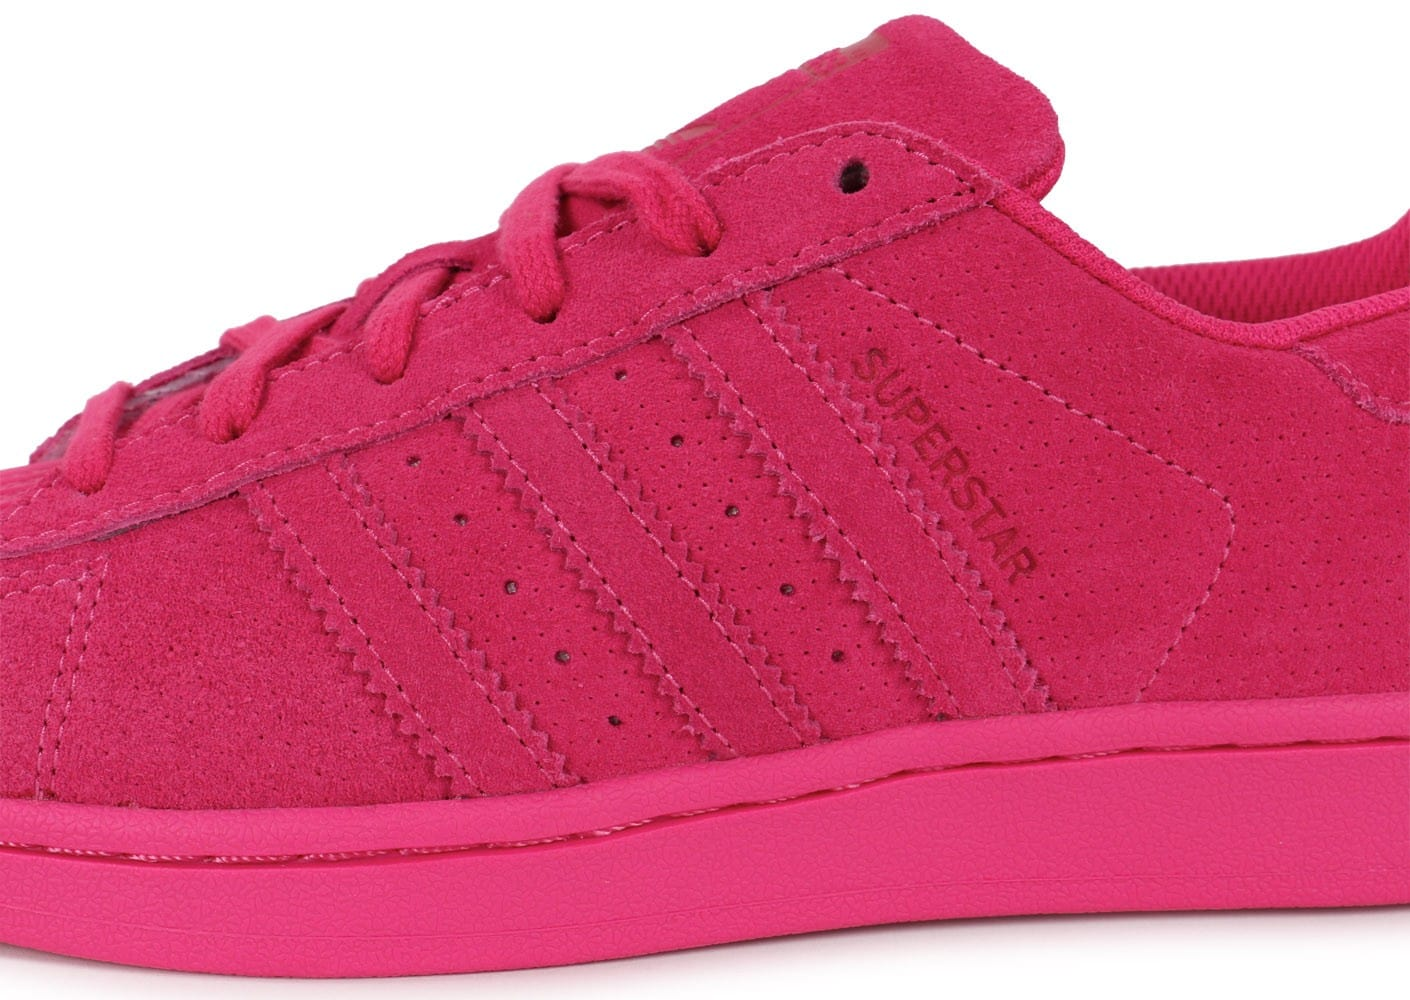 huge selection of 3daab 12725 chaussures adidas superstar monochrome rose zoom detail